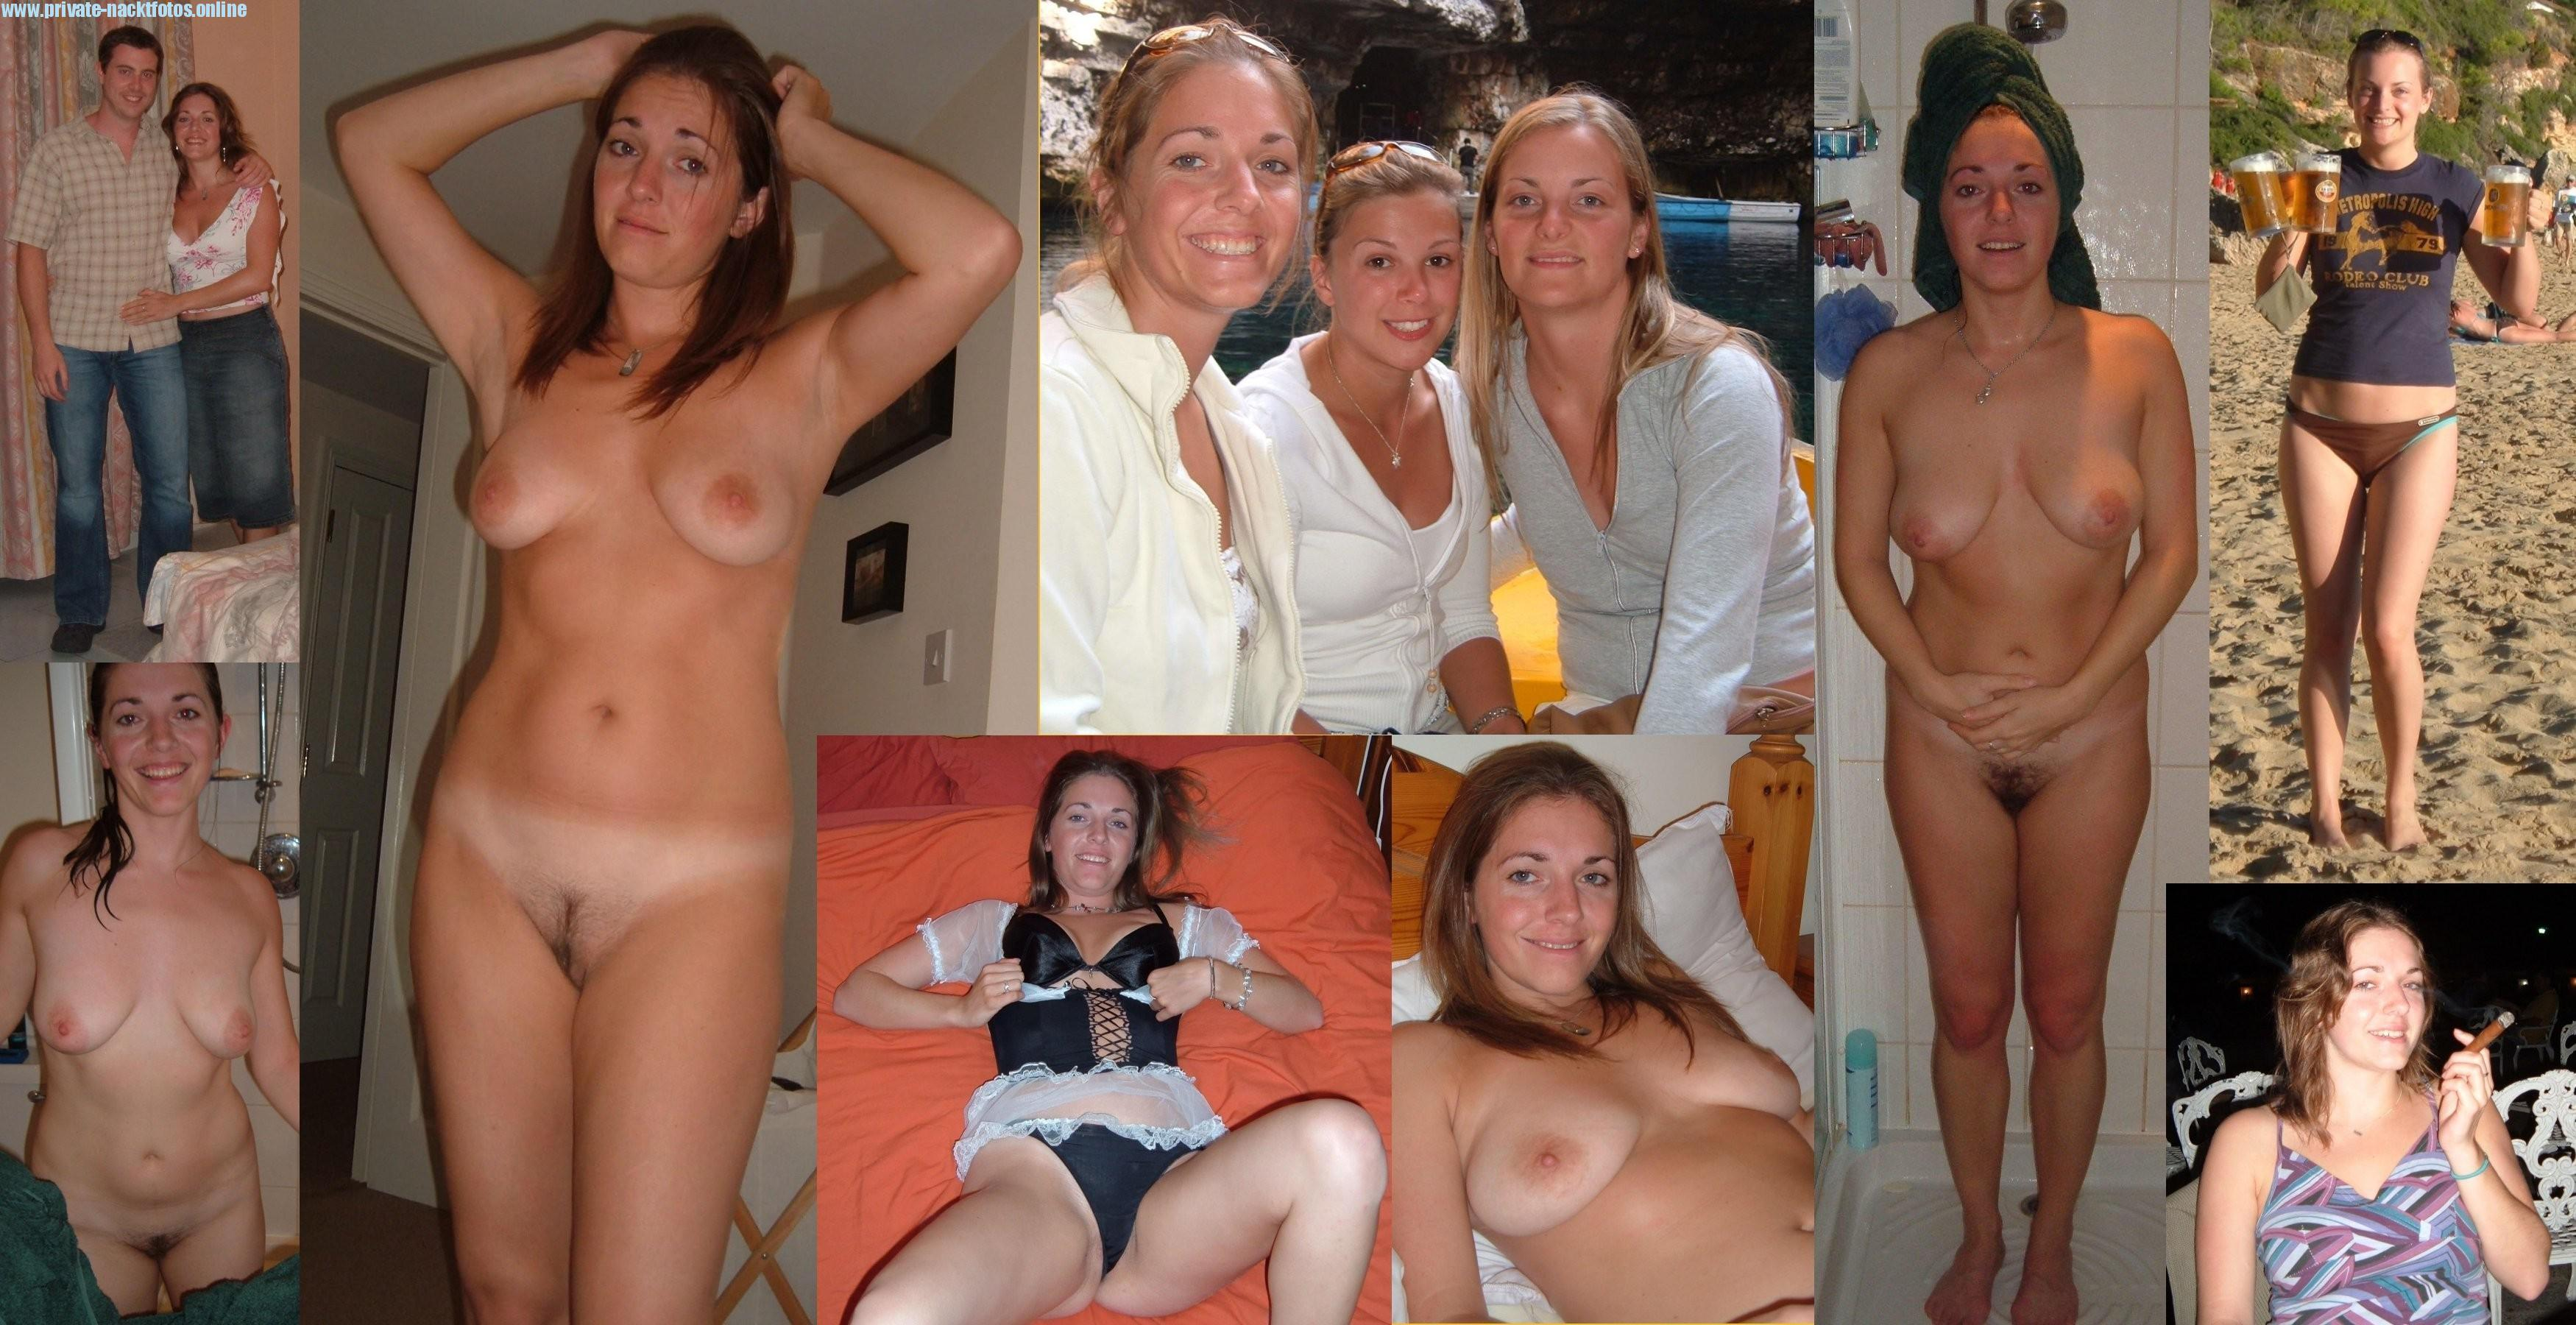 Nude girlfriend and wife sehr